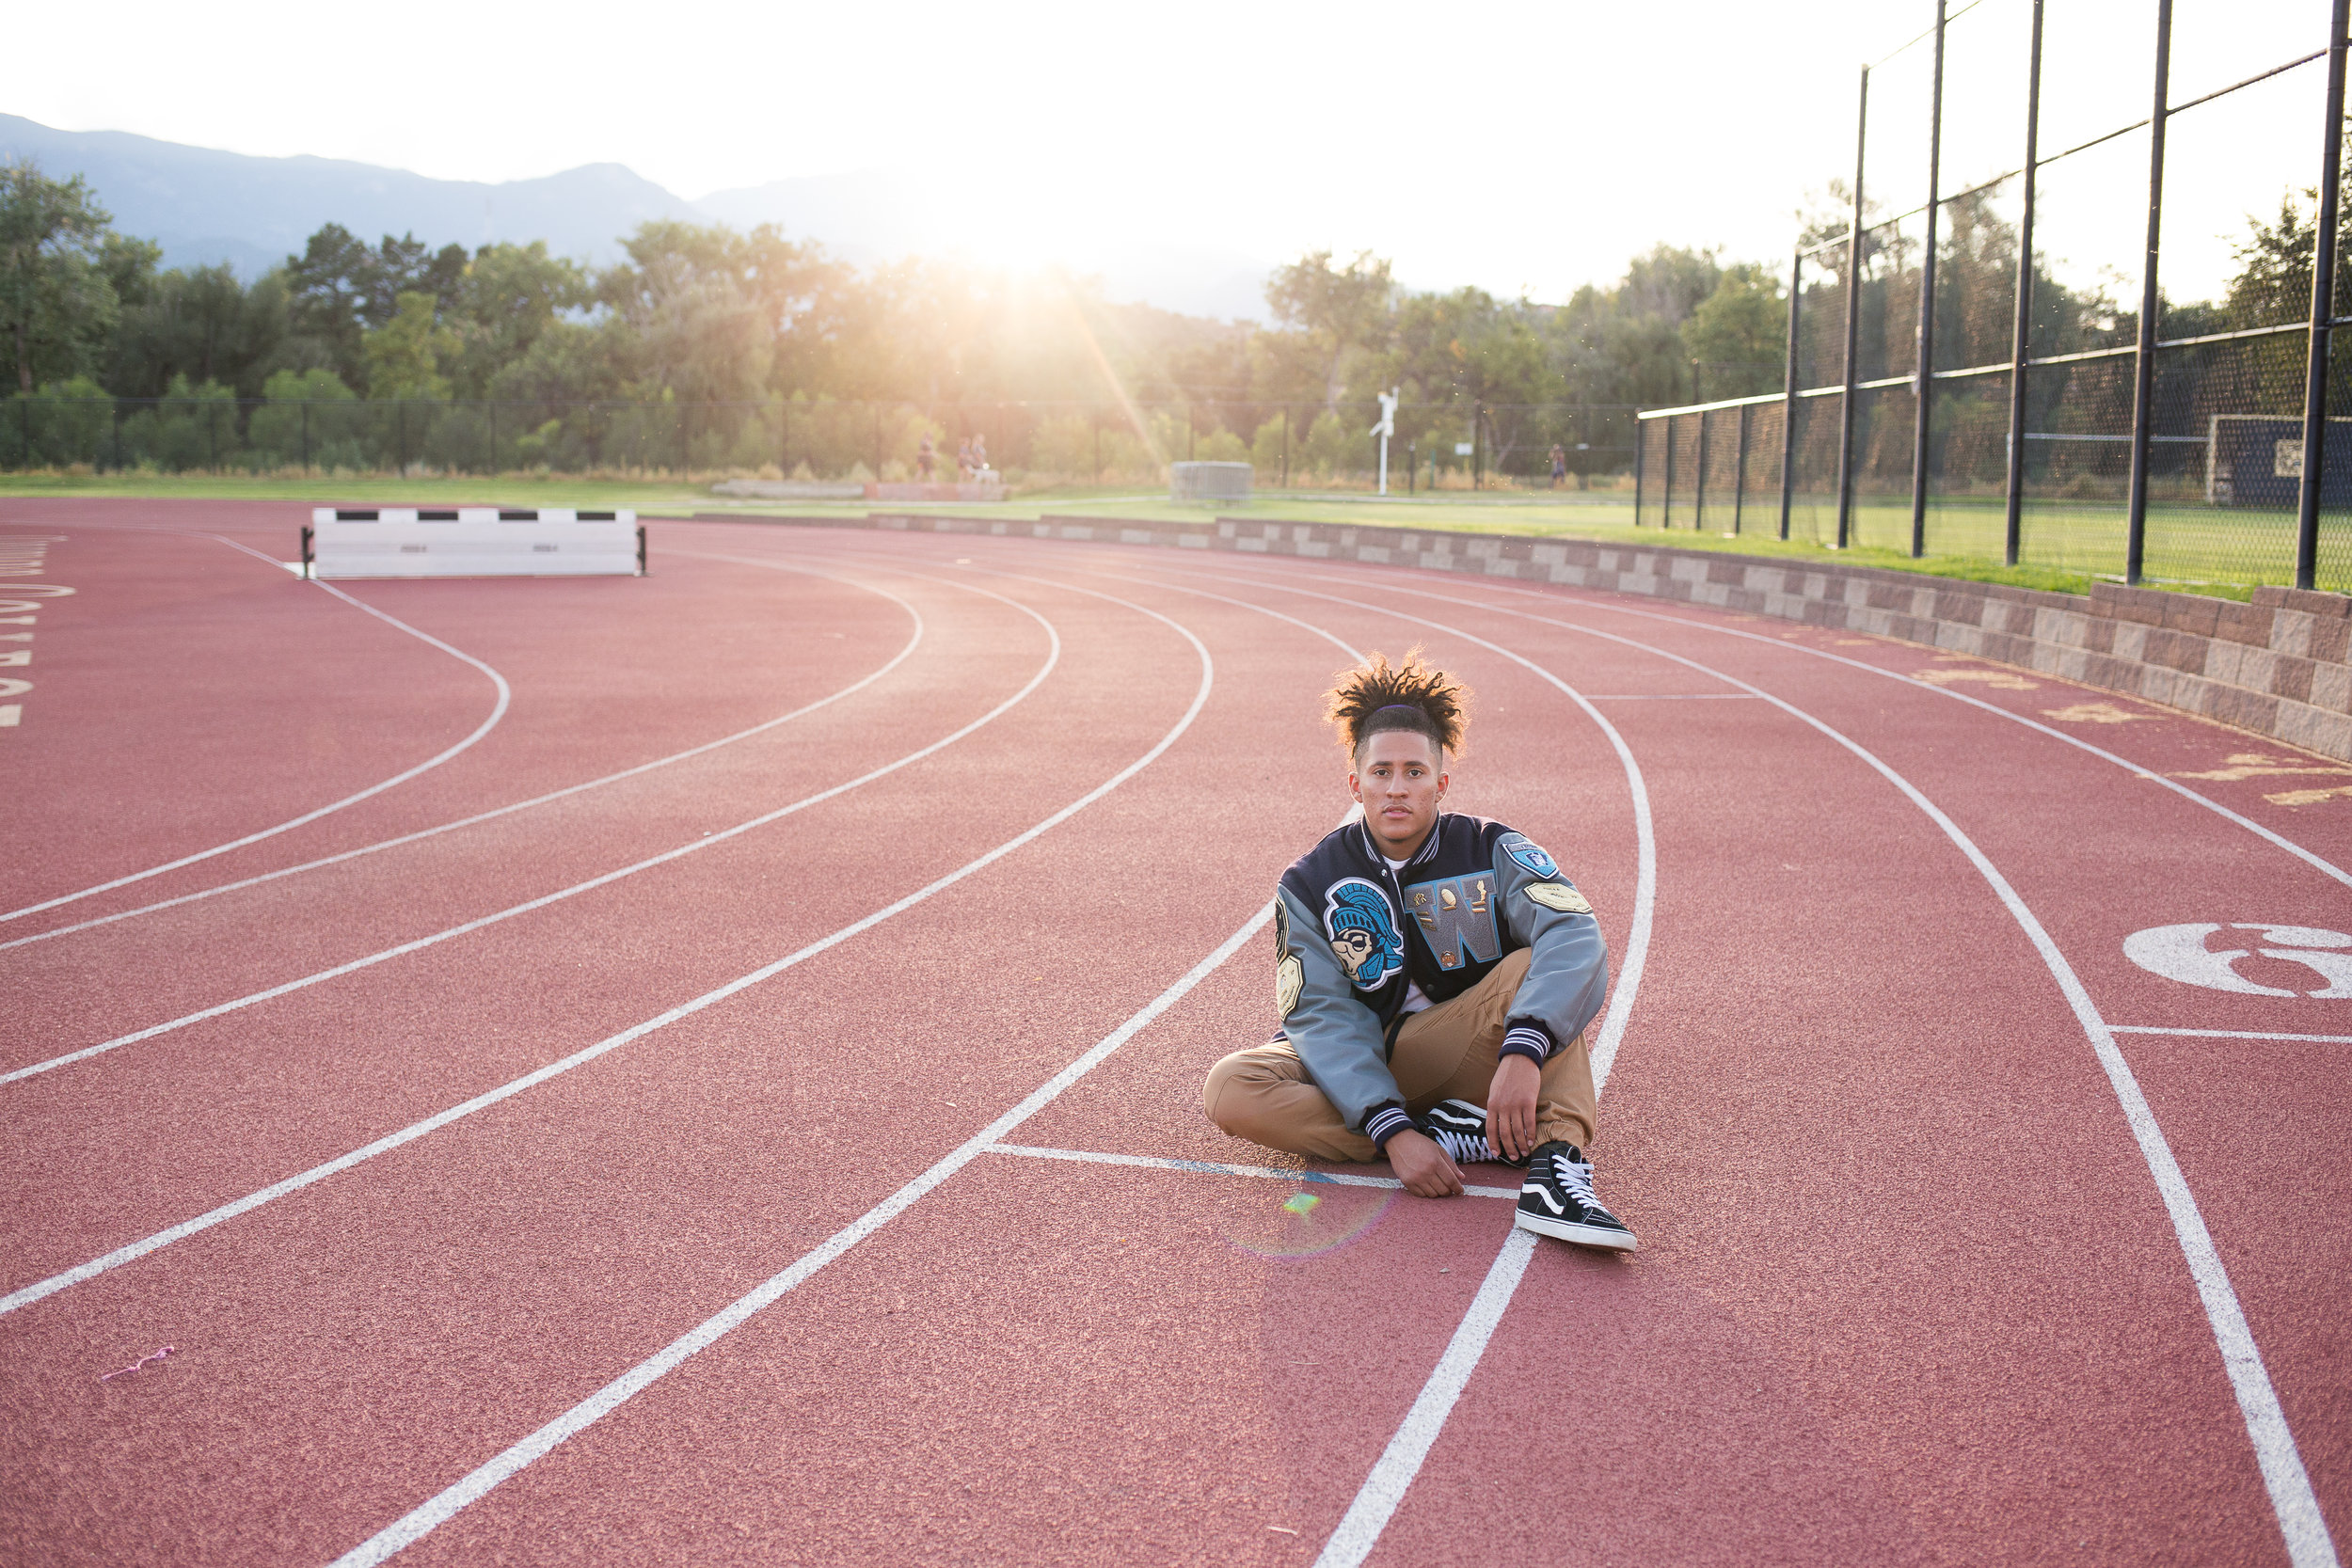 Widefield High School senior in varsity jacket sitting on a track at Colorado College for his Colorado Springs Senior Photos Stacy Carosa Photography